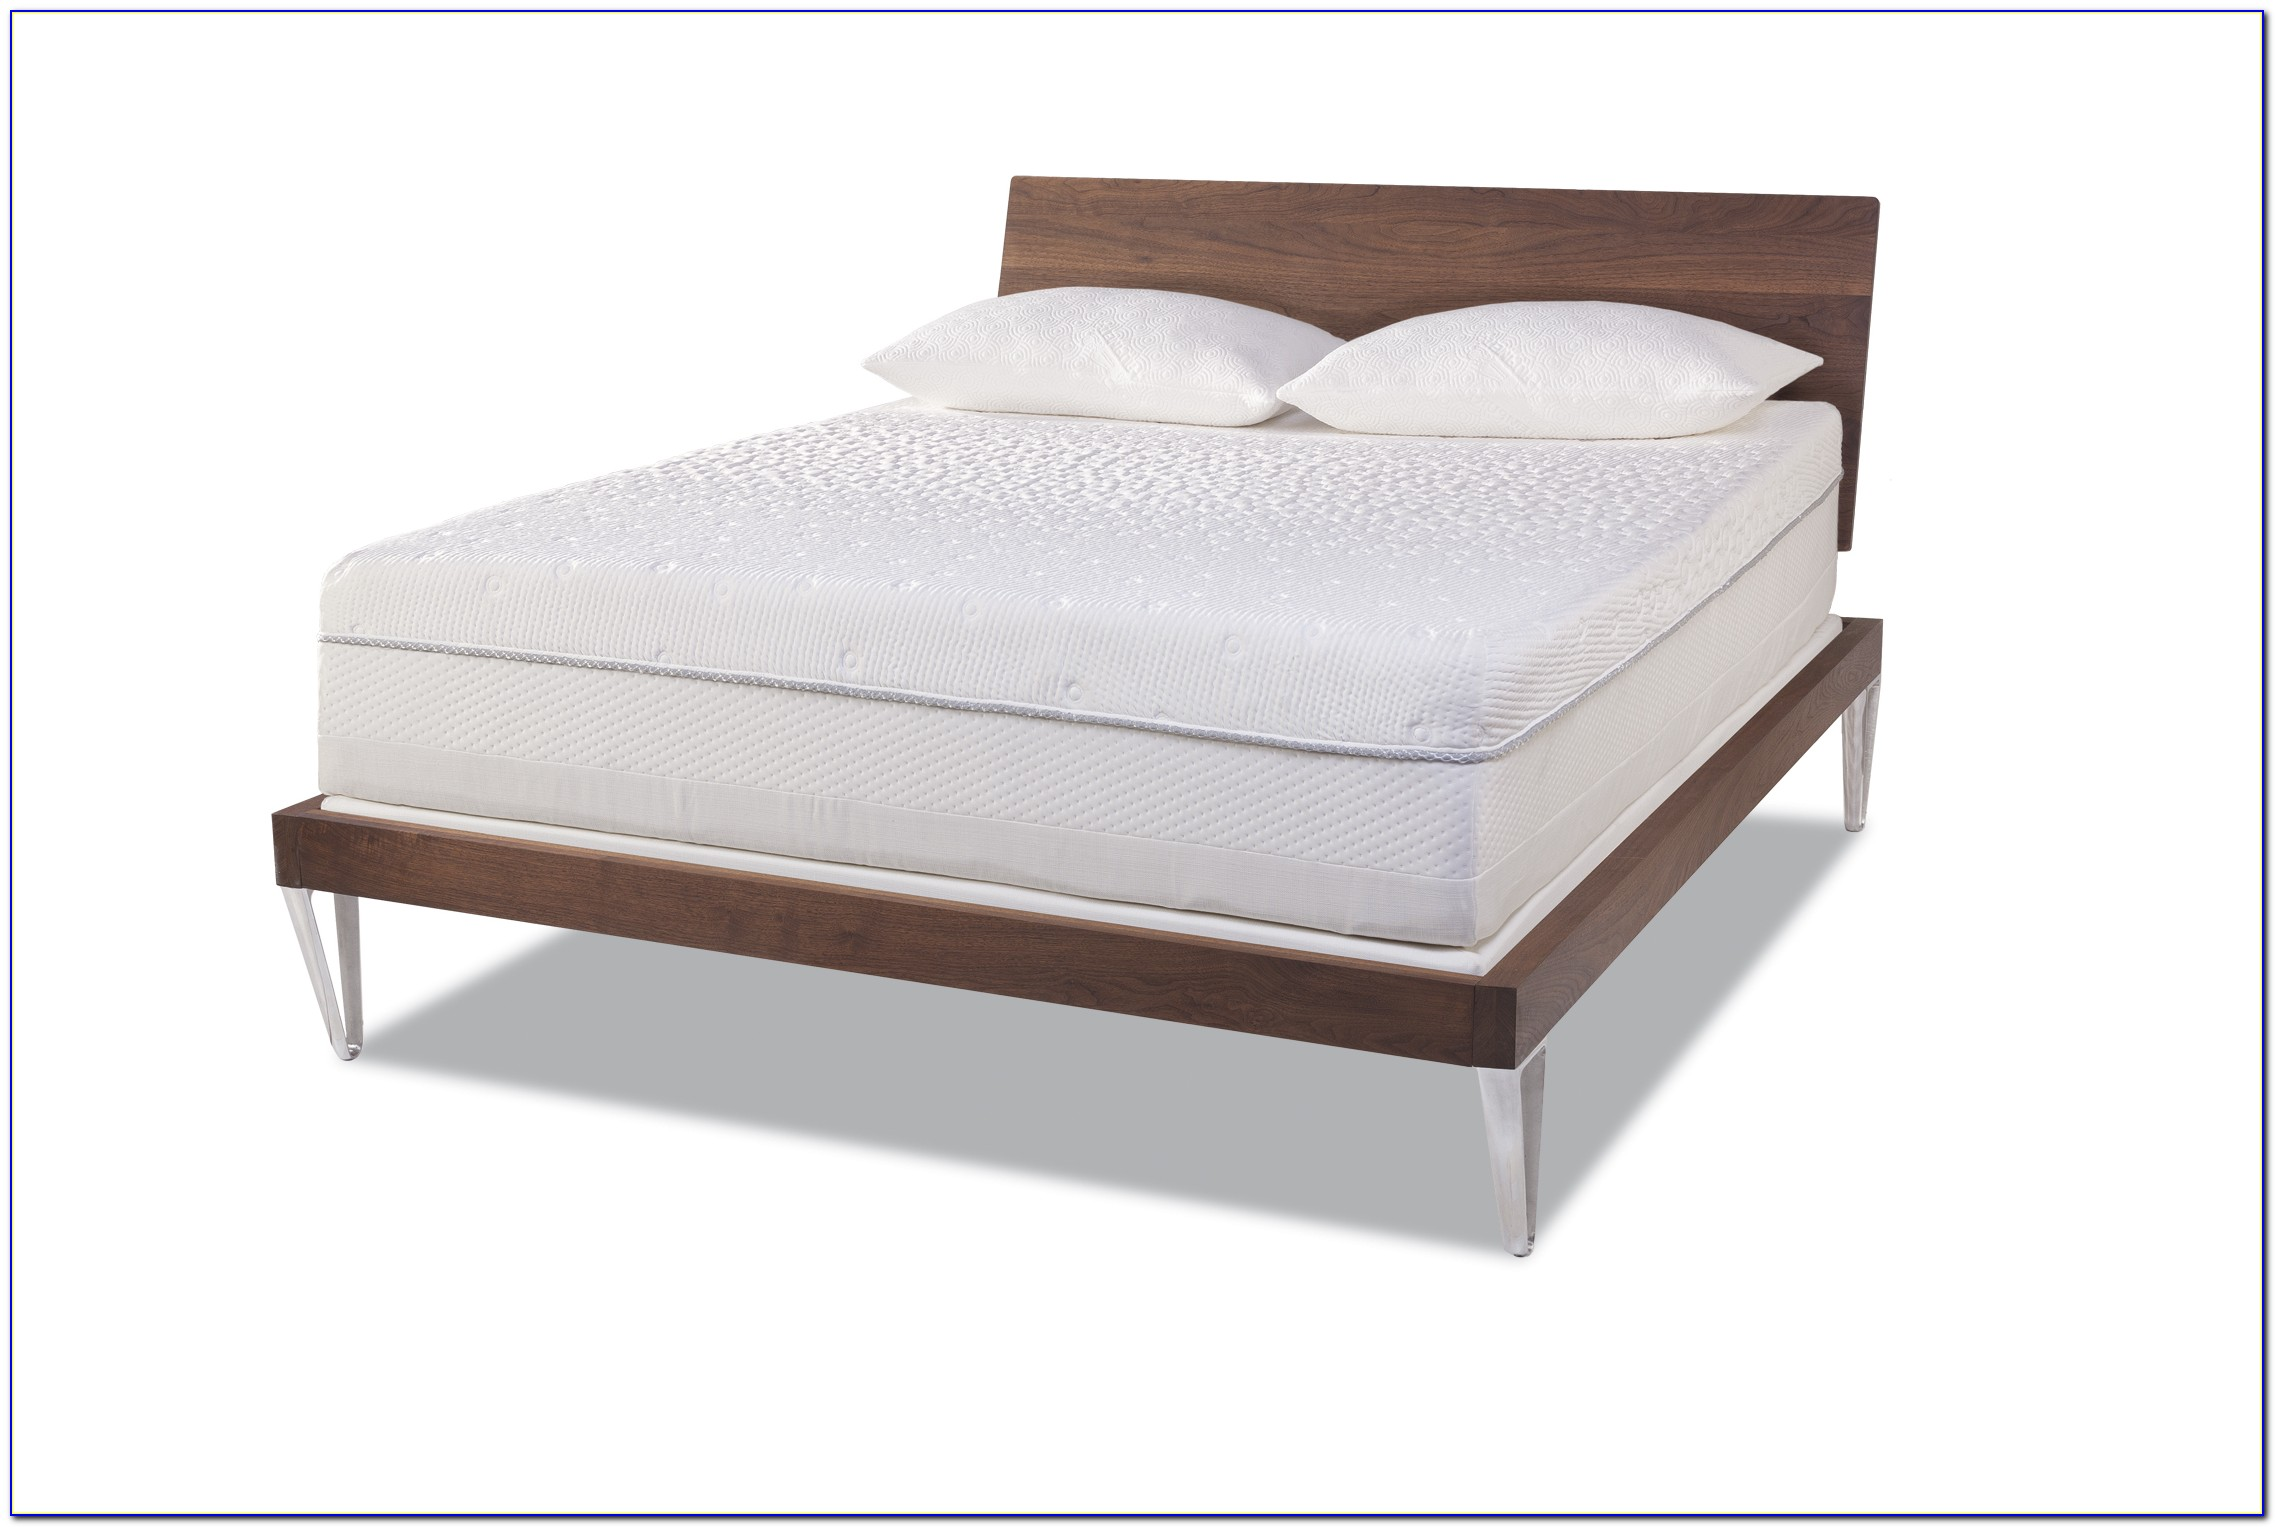 King Headboards For Tempurpedic Beds